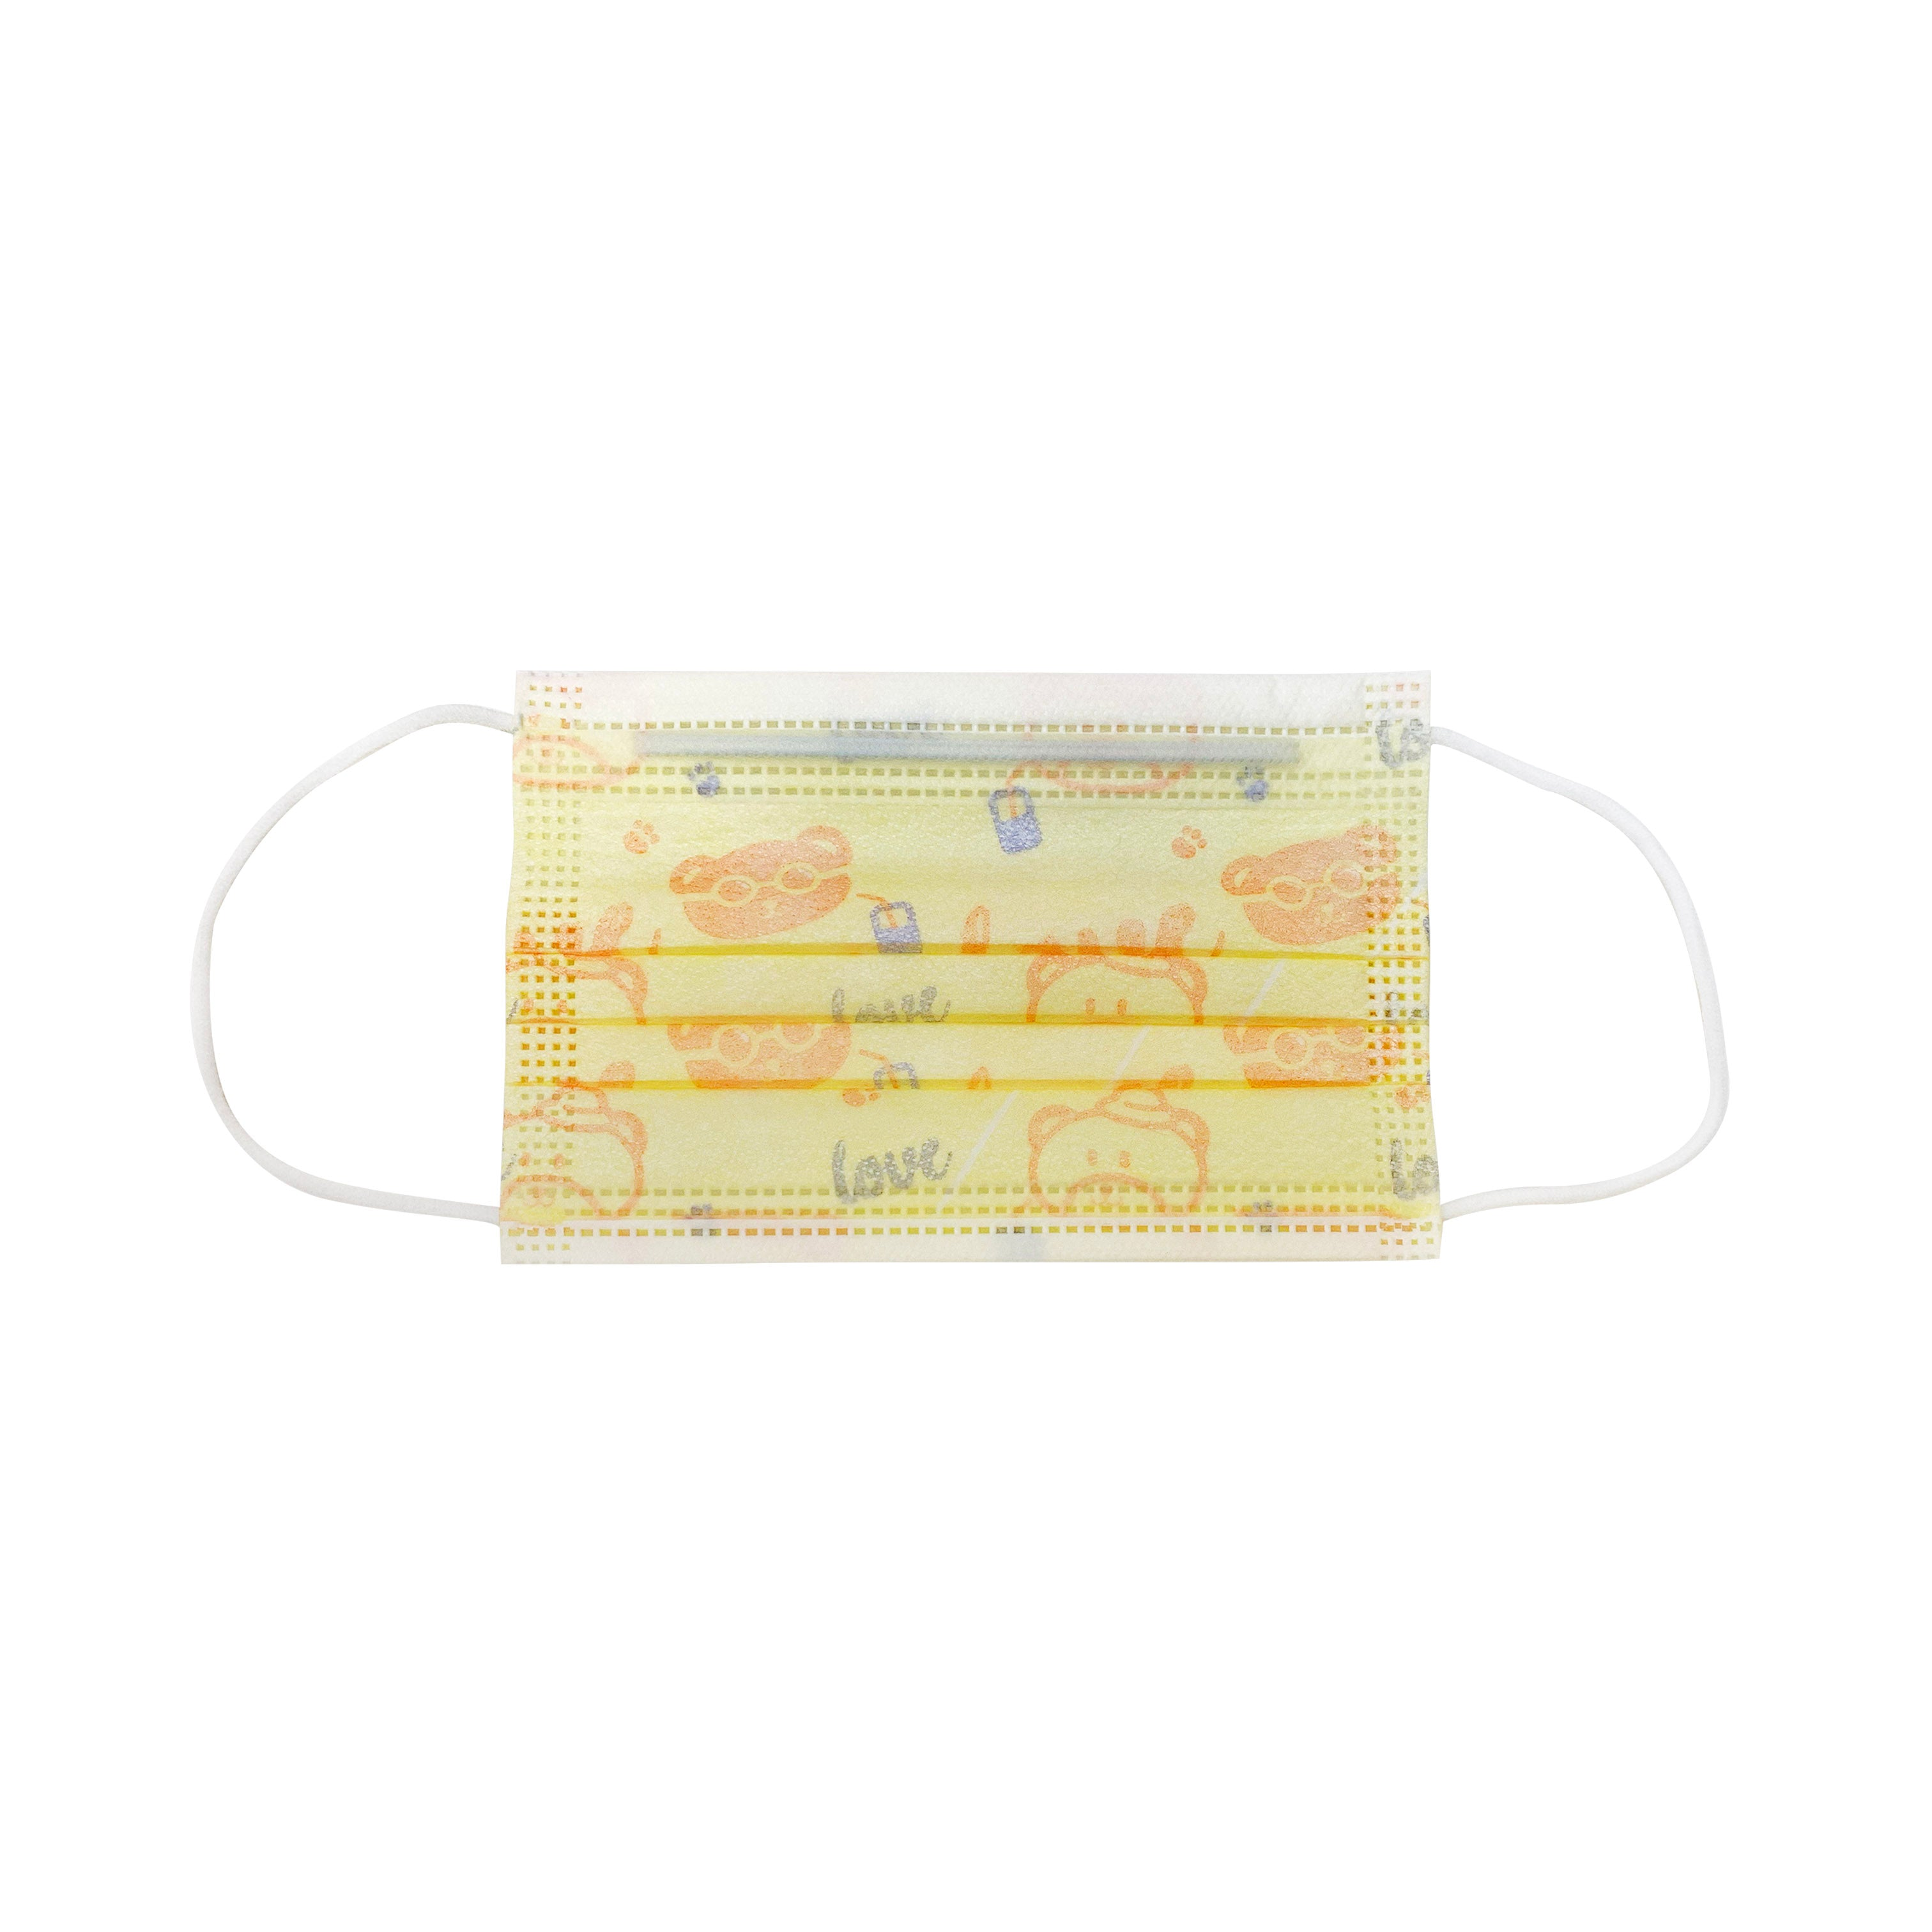 C2W Health coupon: 50 PACK - Kids Disposable Mask